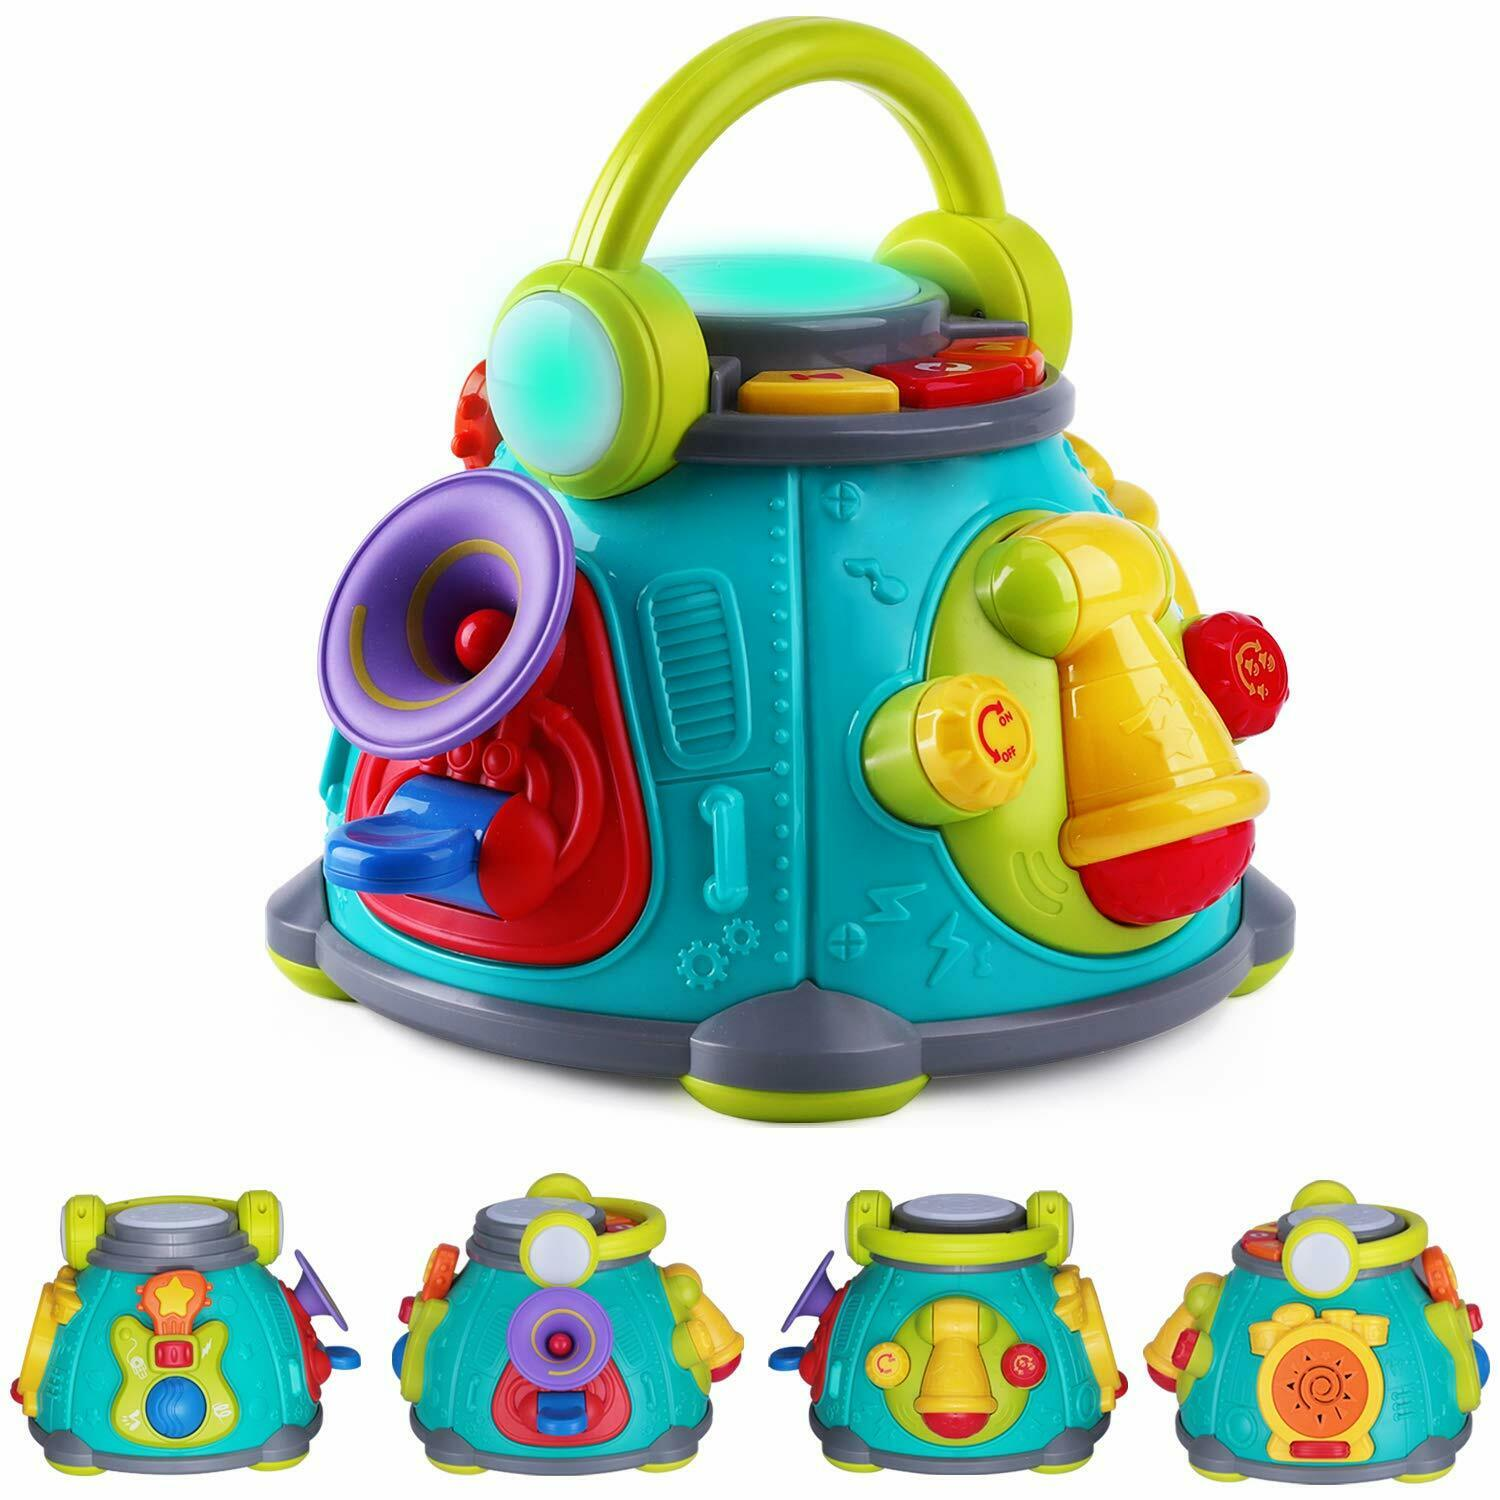 Babies Interactive Toys Baby Music Activity Cube Play Center Musical Toys For Toddlers 1 3 Infants Toy